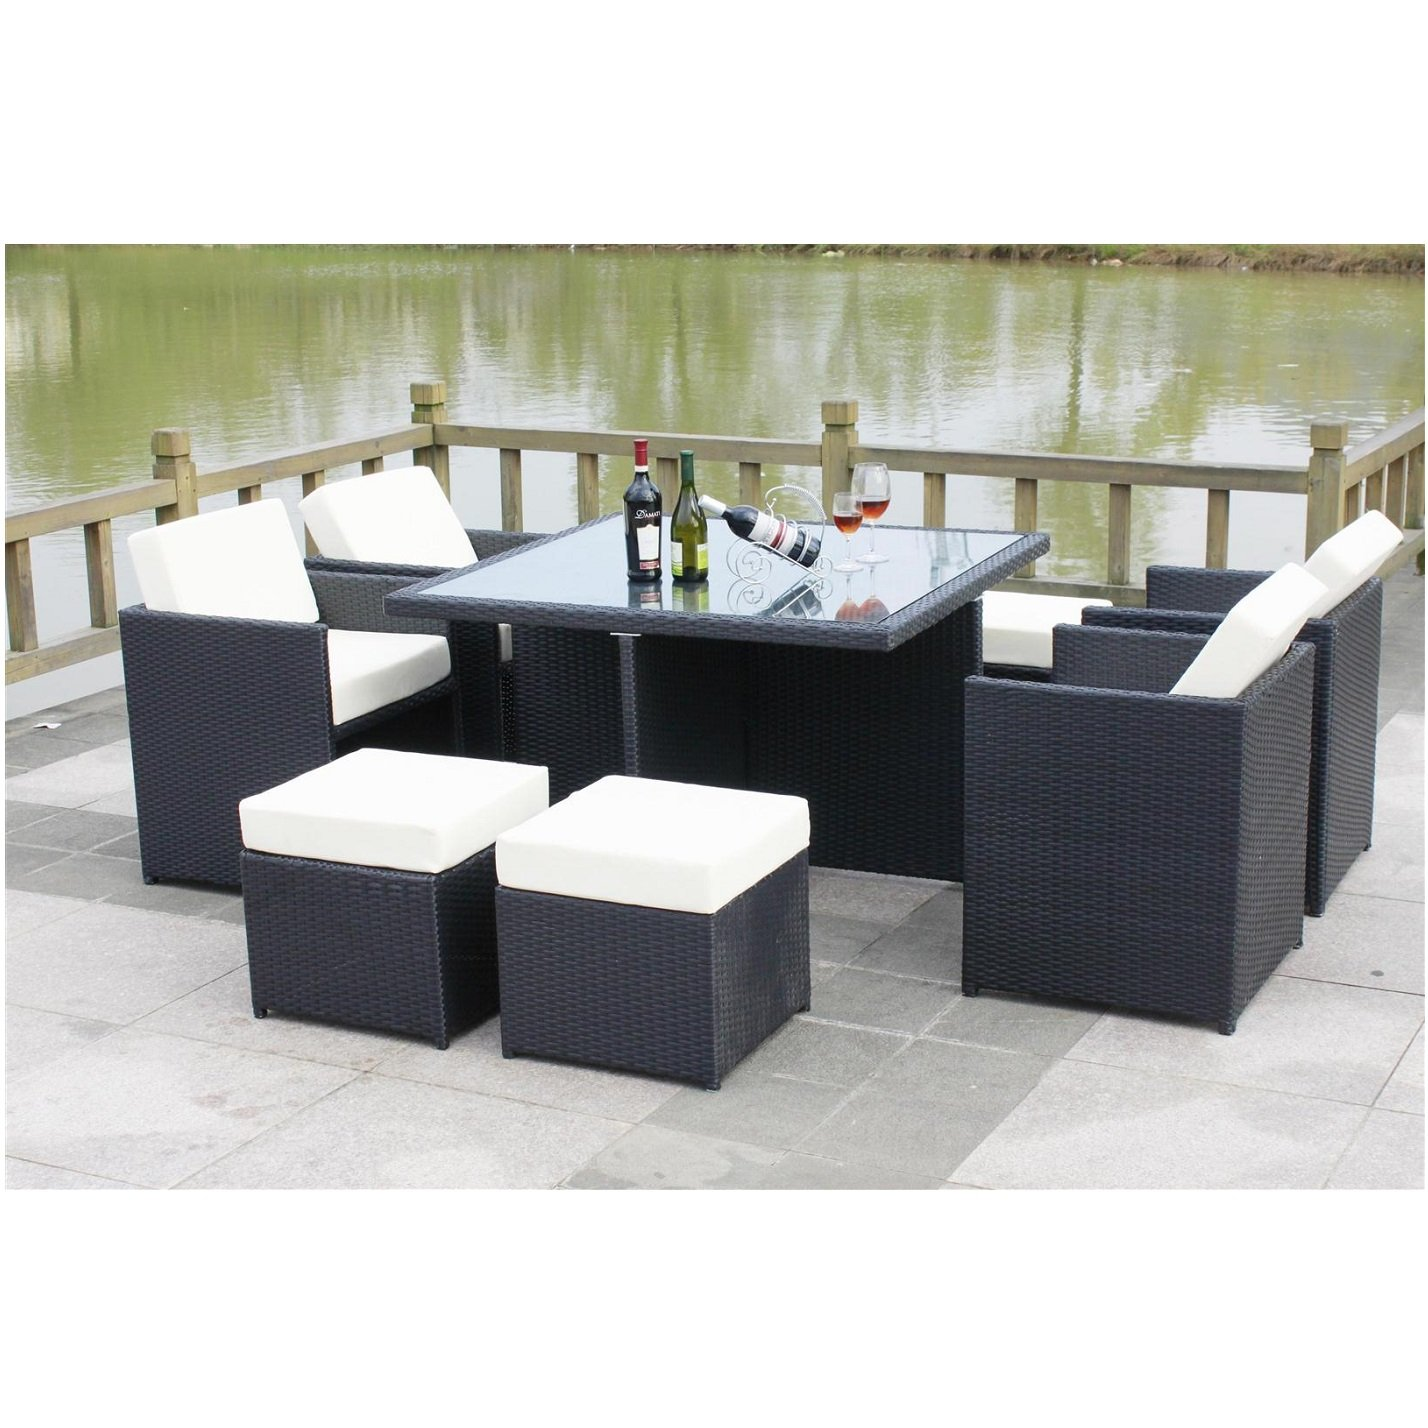 All Seasons Outdoor JT7s Rattan Garden Furniture Outdoor Patio Set With  Glass Table SUMMER SALE